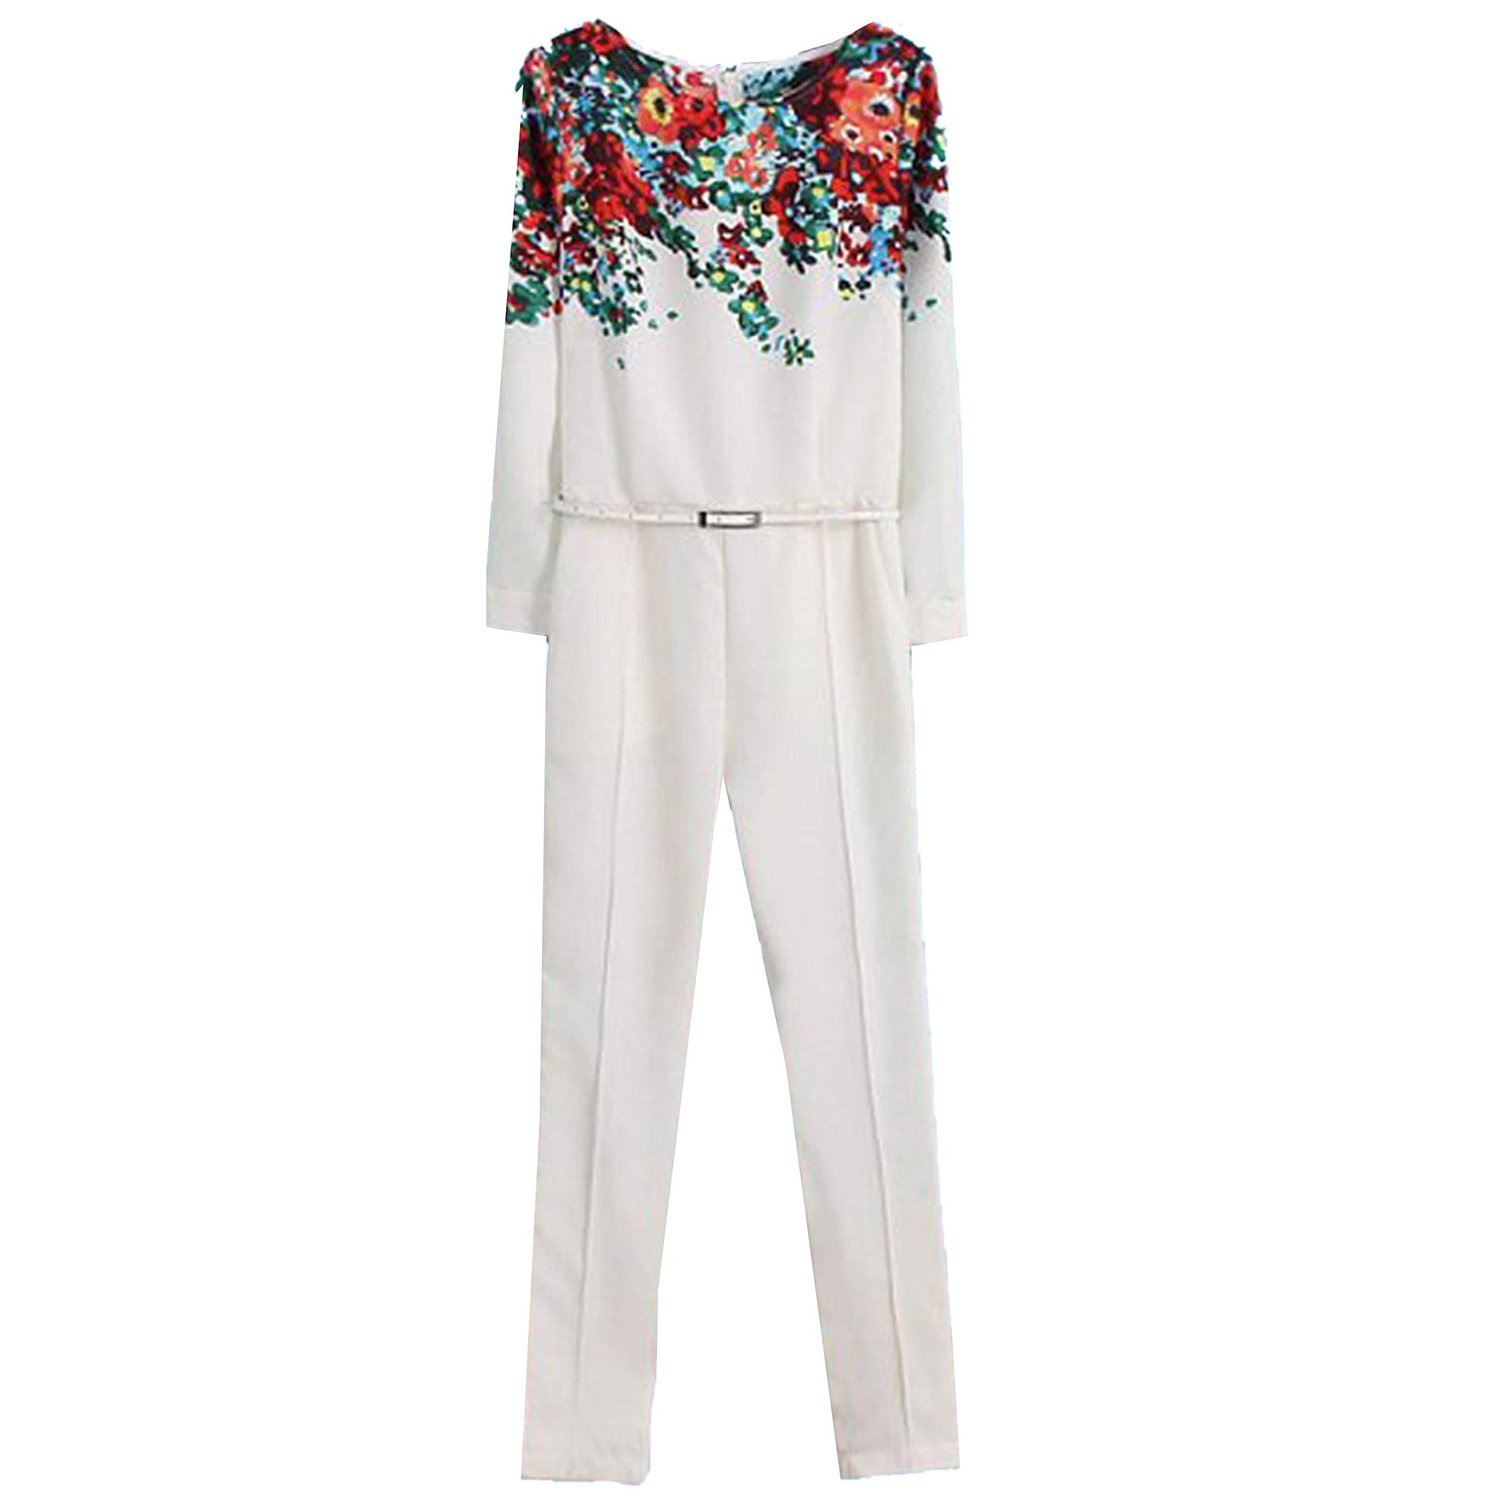 Amazon.com: finejo new womens white round neck long sleeve floral pattern slim jumpsuits: clothing